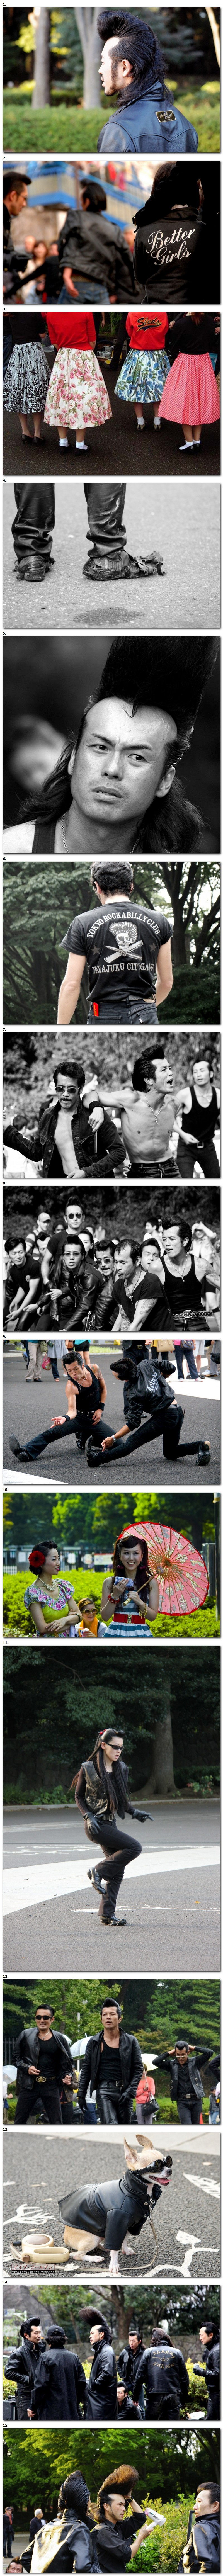 """La culture Rockabilly au Japon""."